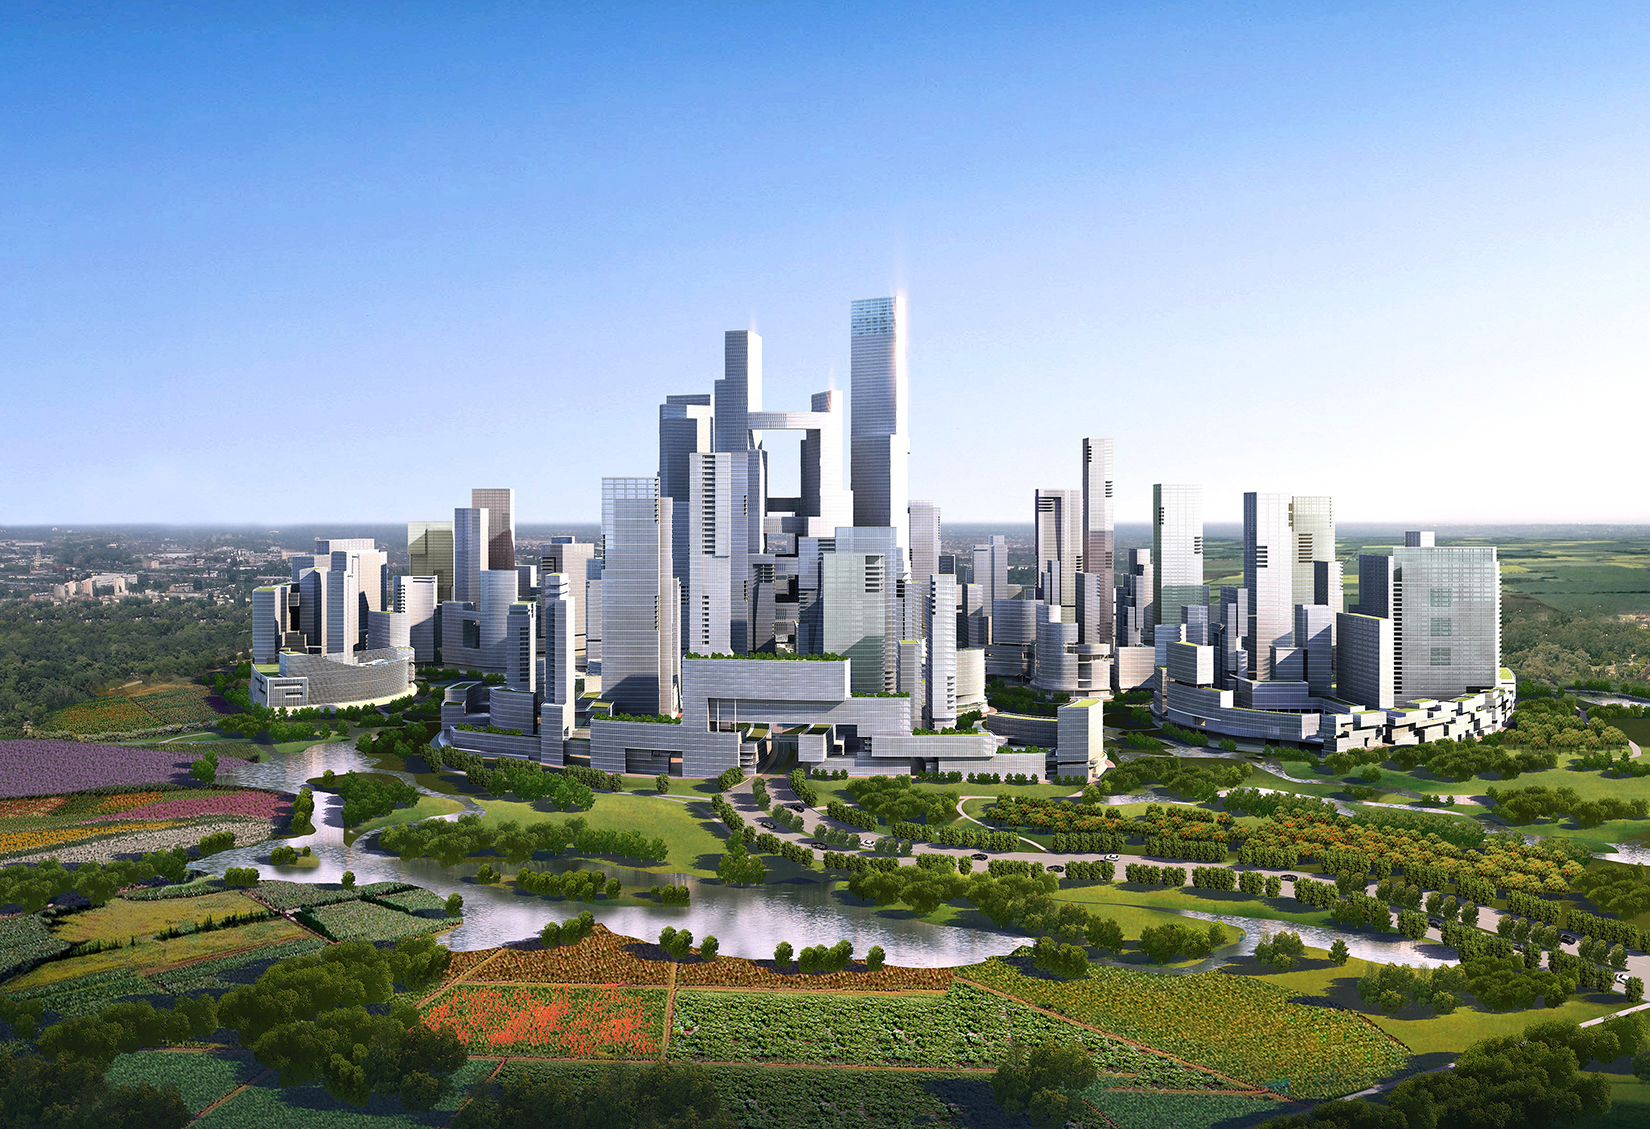 Tianfu Ecological City overall